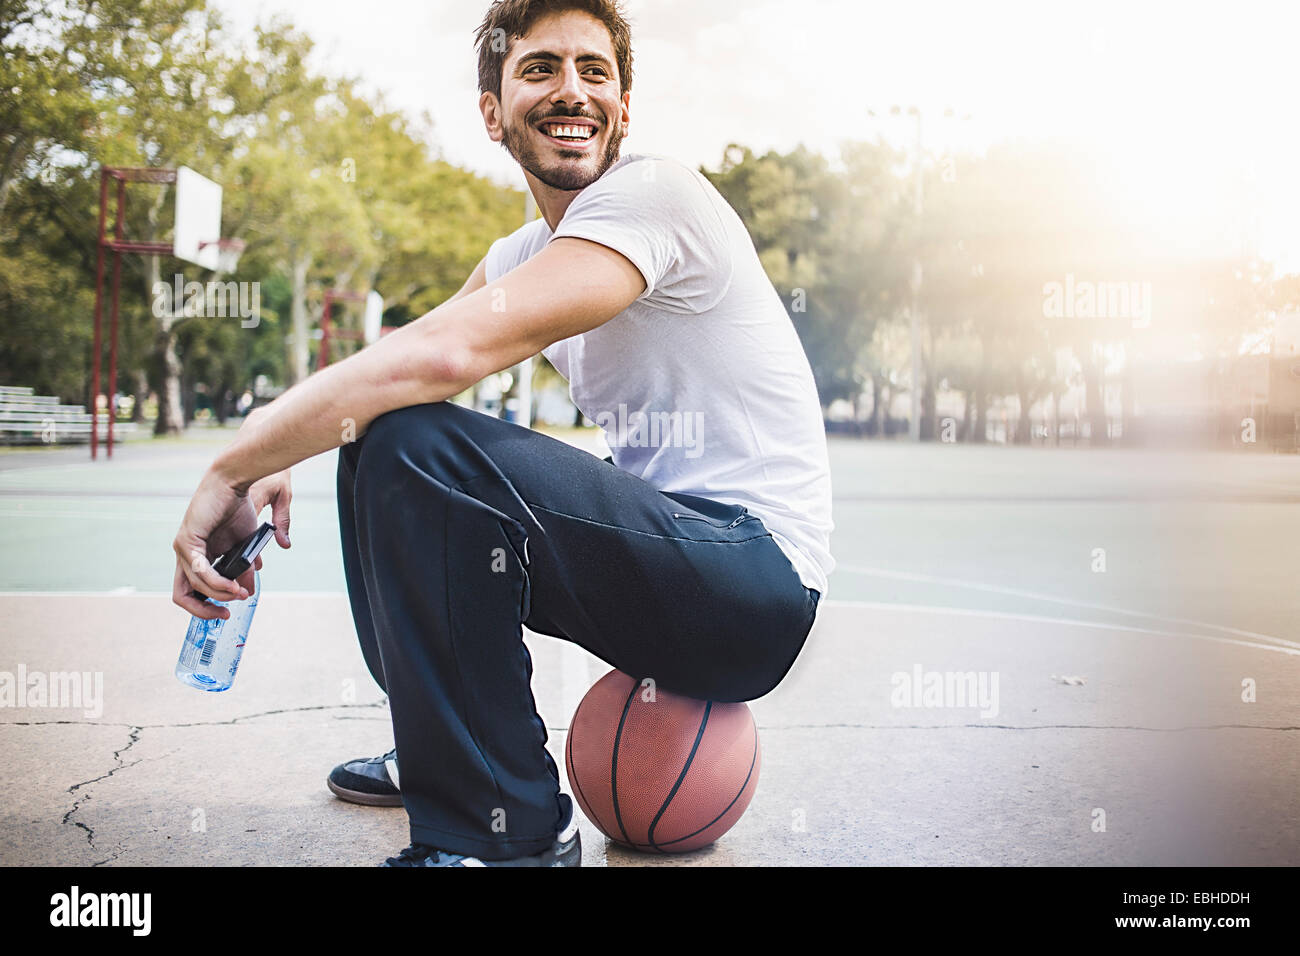 Portrait de jeune homme assis sur le basket ball Photo Stock